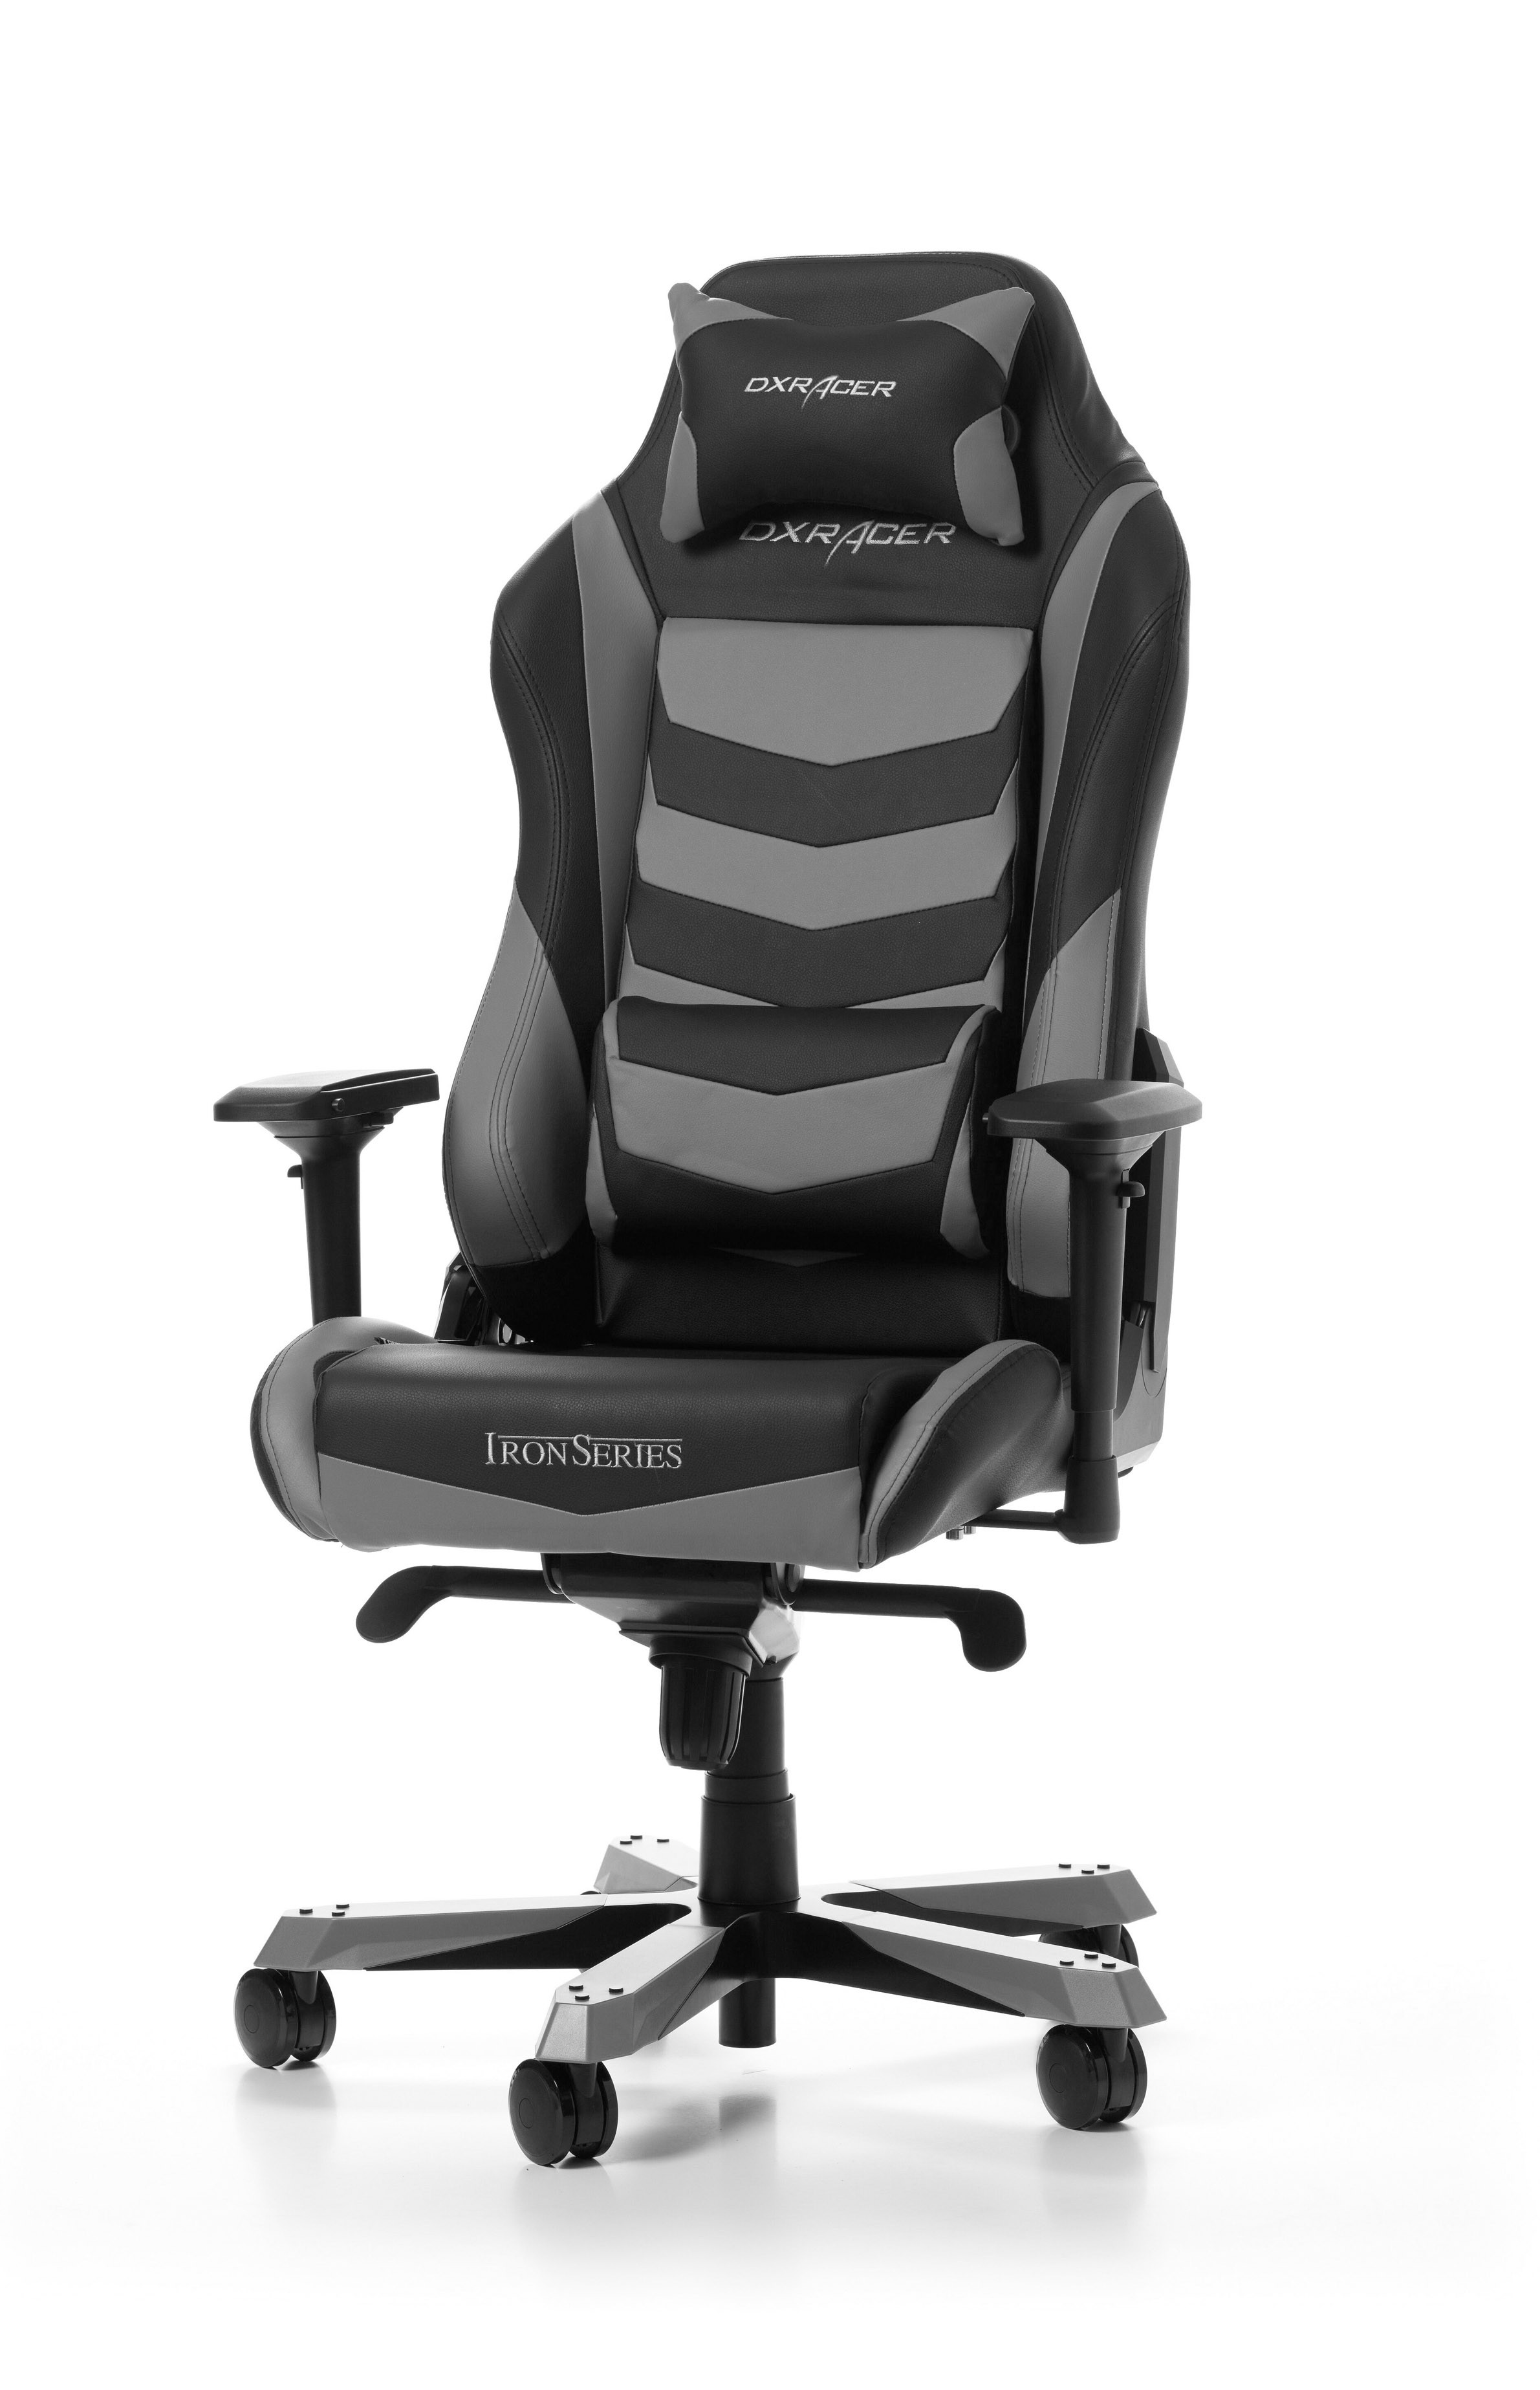 Dxracer Office Chair Dxracer Iron Series I166 Ng Grey Gaming Chair